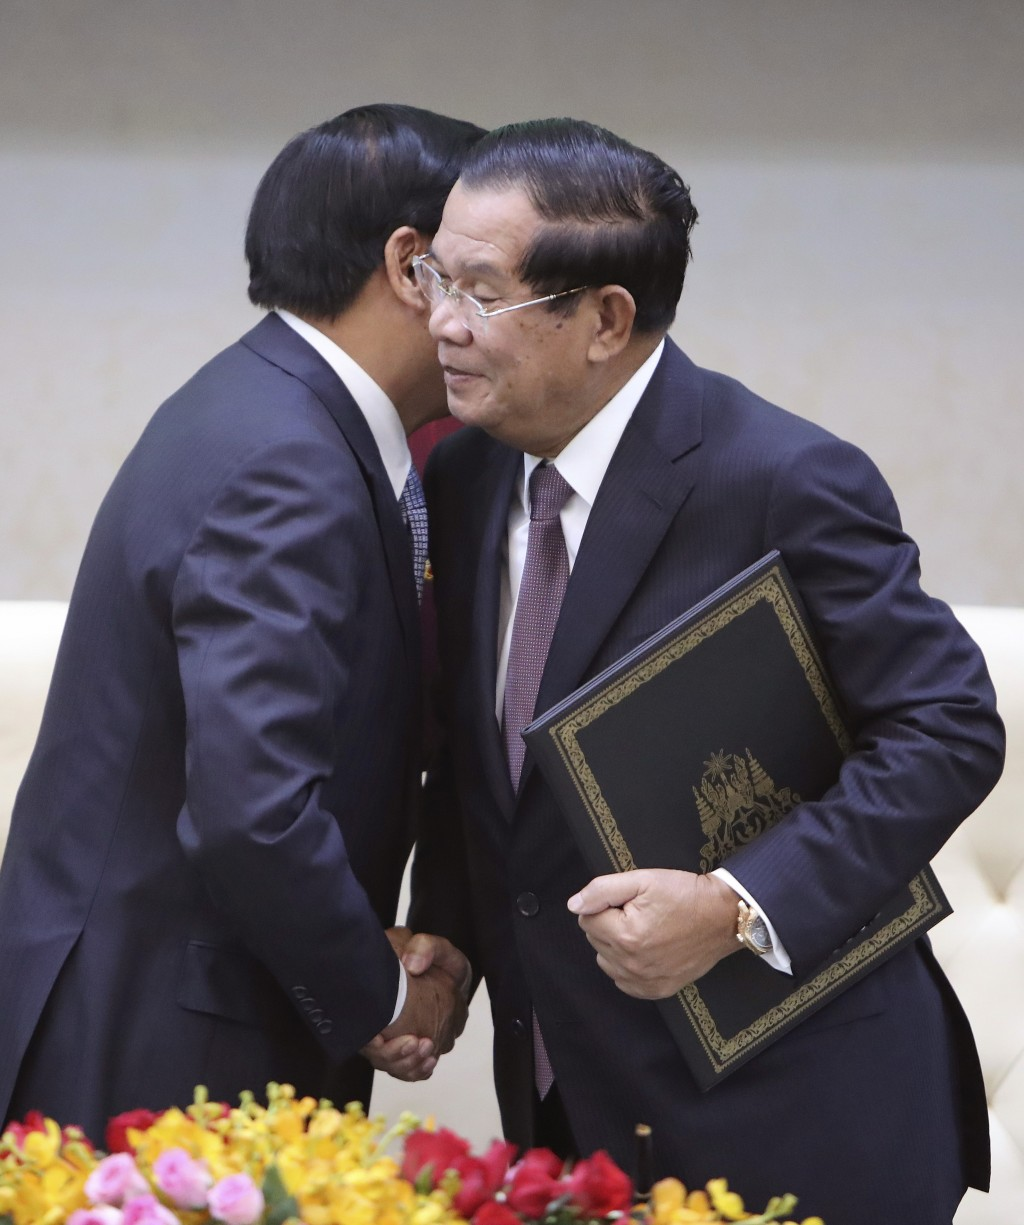 Cambodian Prime Minister Hun Sen, right, hugs his Laos counterpart Thonloun Sisoulith during a signing ceremony, in Phnom Penh, Cambodia, Thursday, Se...